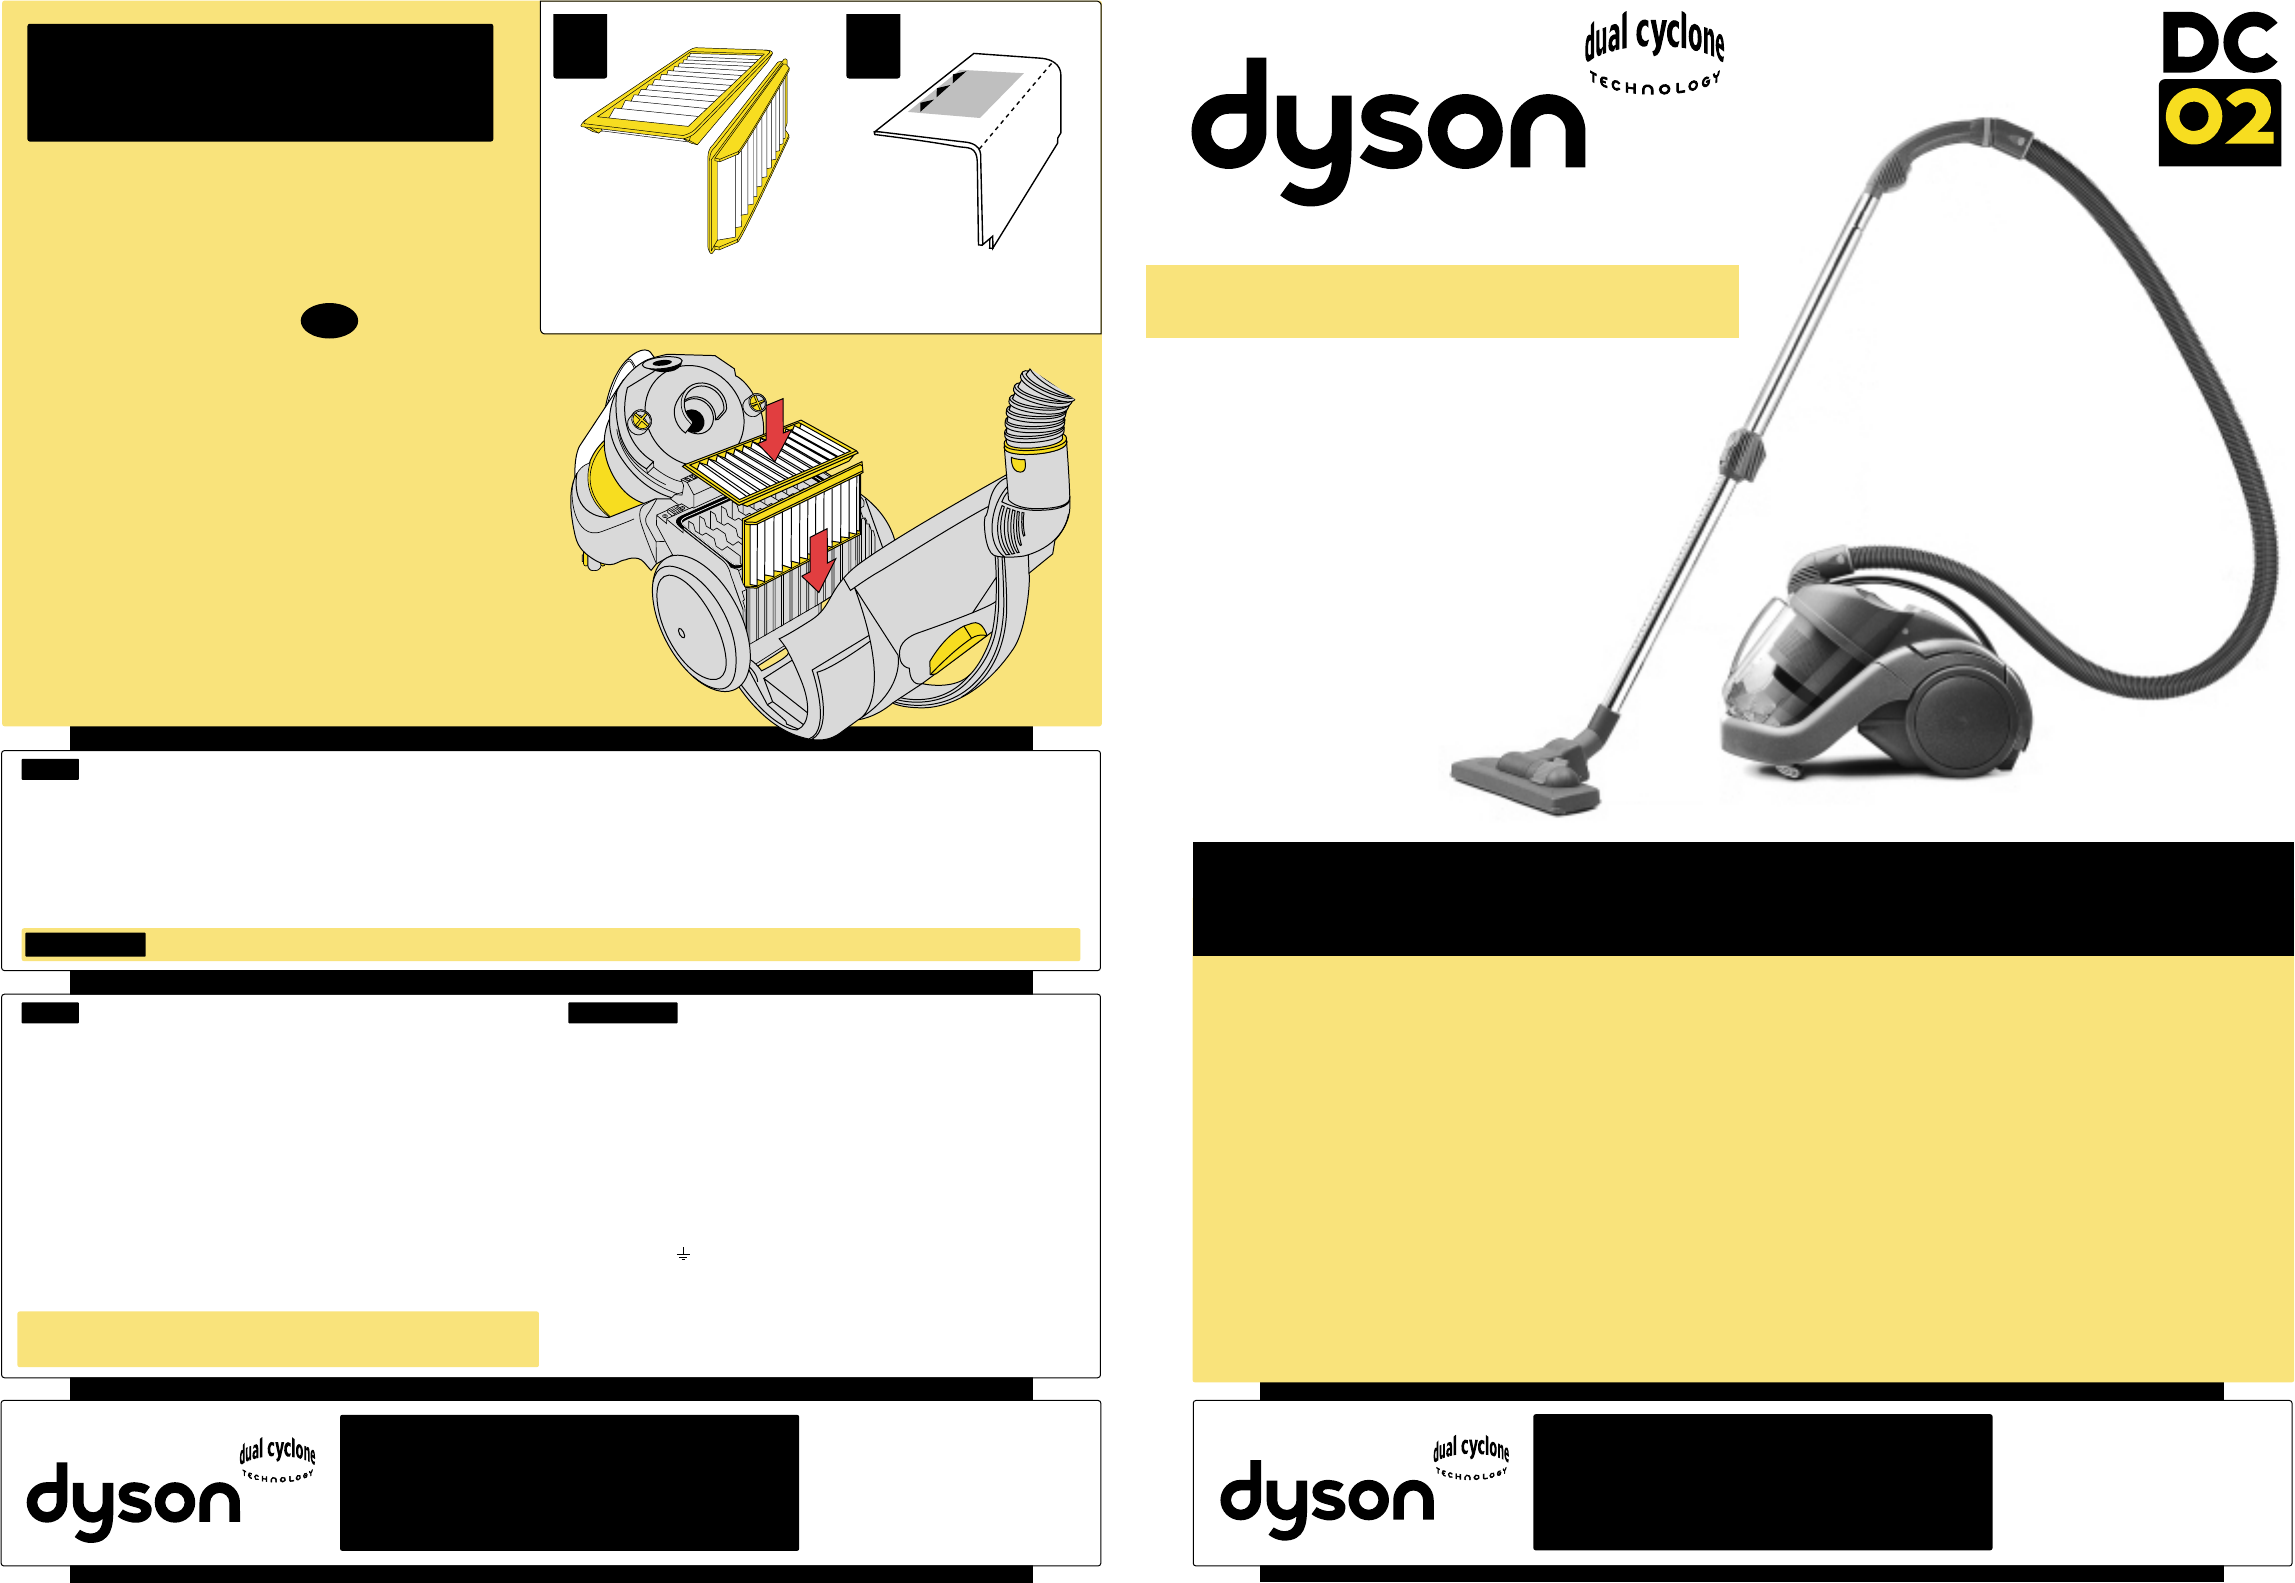 dyson vacuum cleaner dc02 user guide manualsonline com rh homeappliance manualsonline com Dyson DC05 Dyson DC04